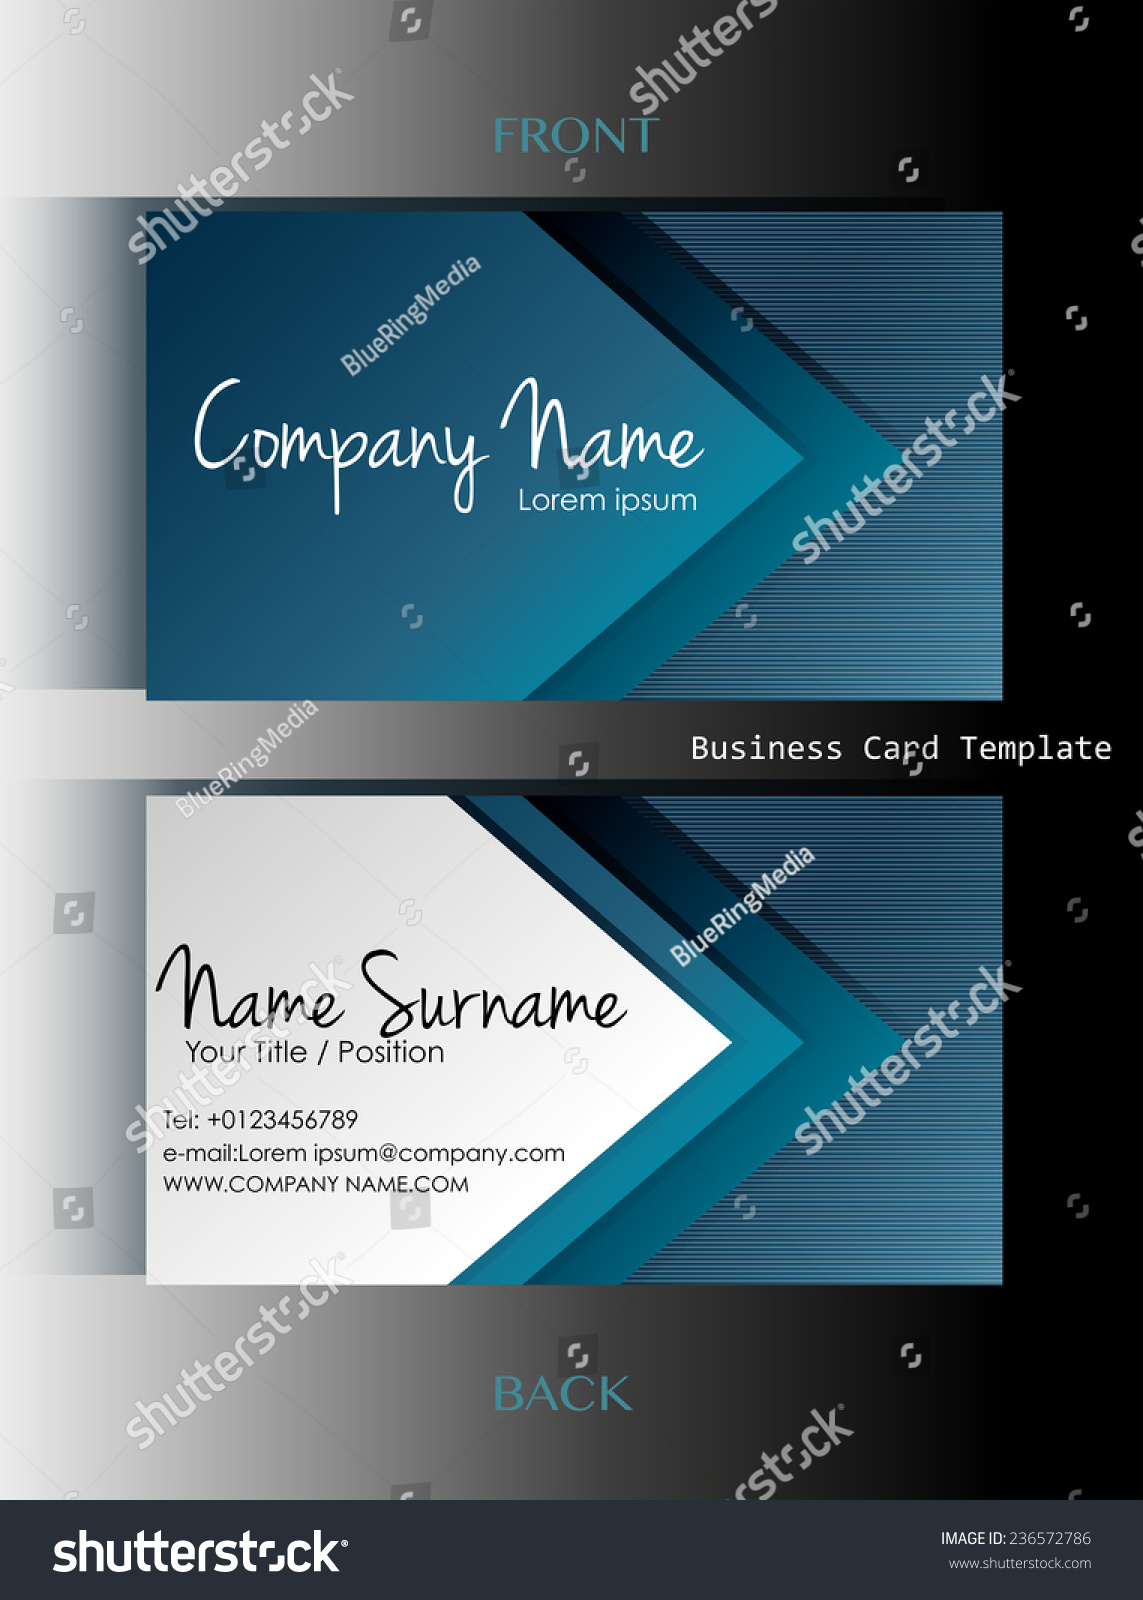 Back business card images free business cards front back business card template stock vector 236572786 a front and back business card template magicingreecefo magicingreecefo Images